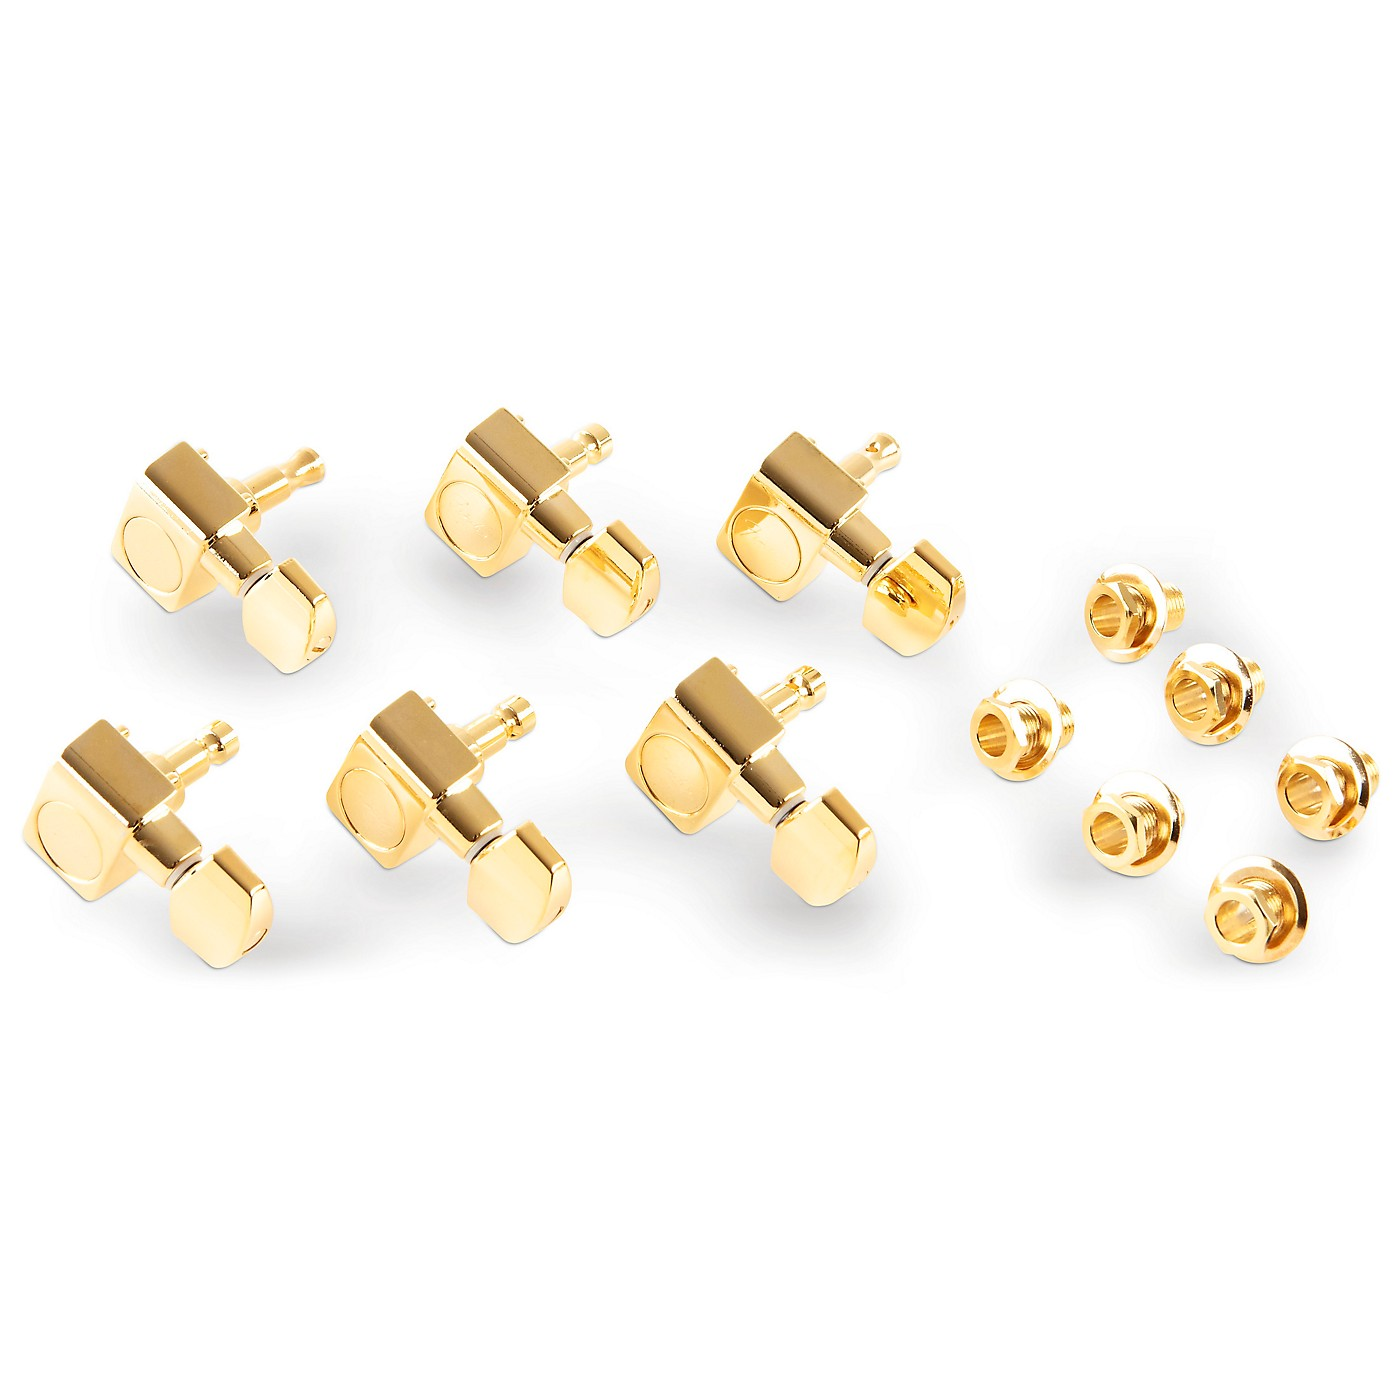 Fender American Series Stratocaster Guitar Tuners with Gold Hardware Set of 6 thumbnail